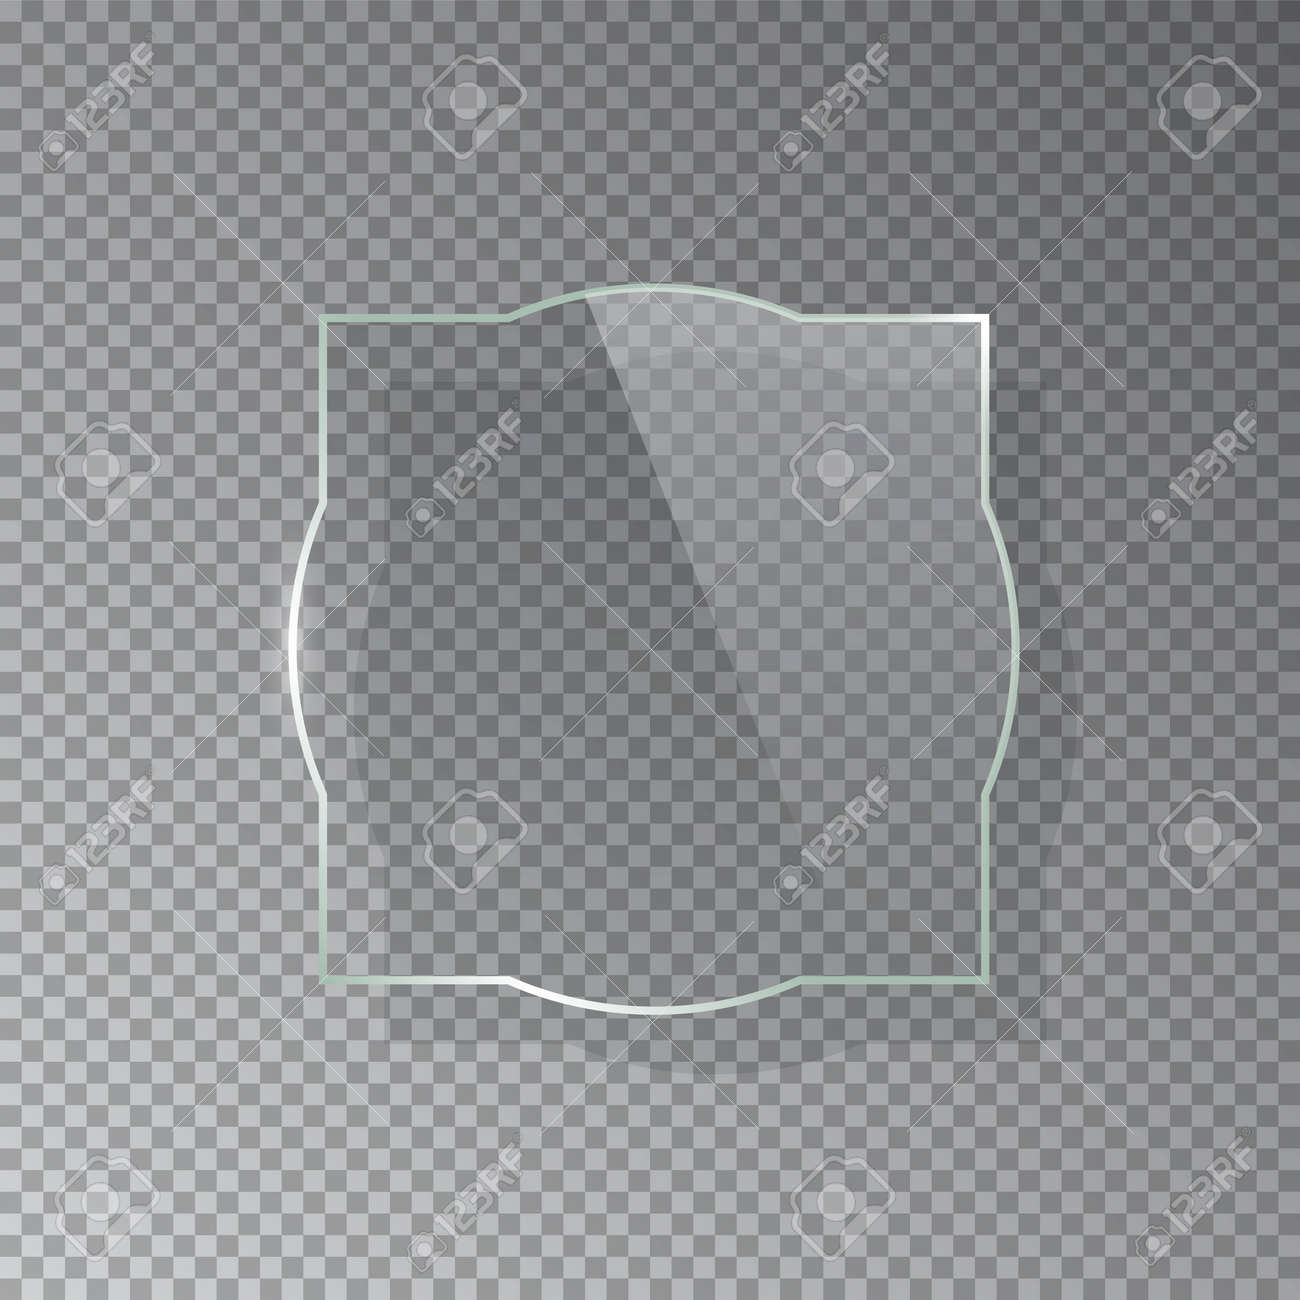 Realistic 3d glass frame isolated on grey transparent background. Creative border plate object. Vector blank framework. - 164500958